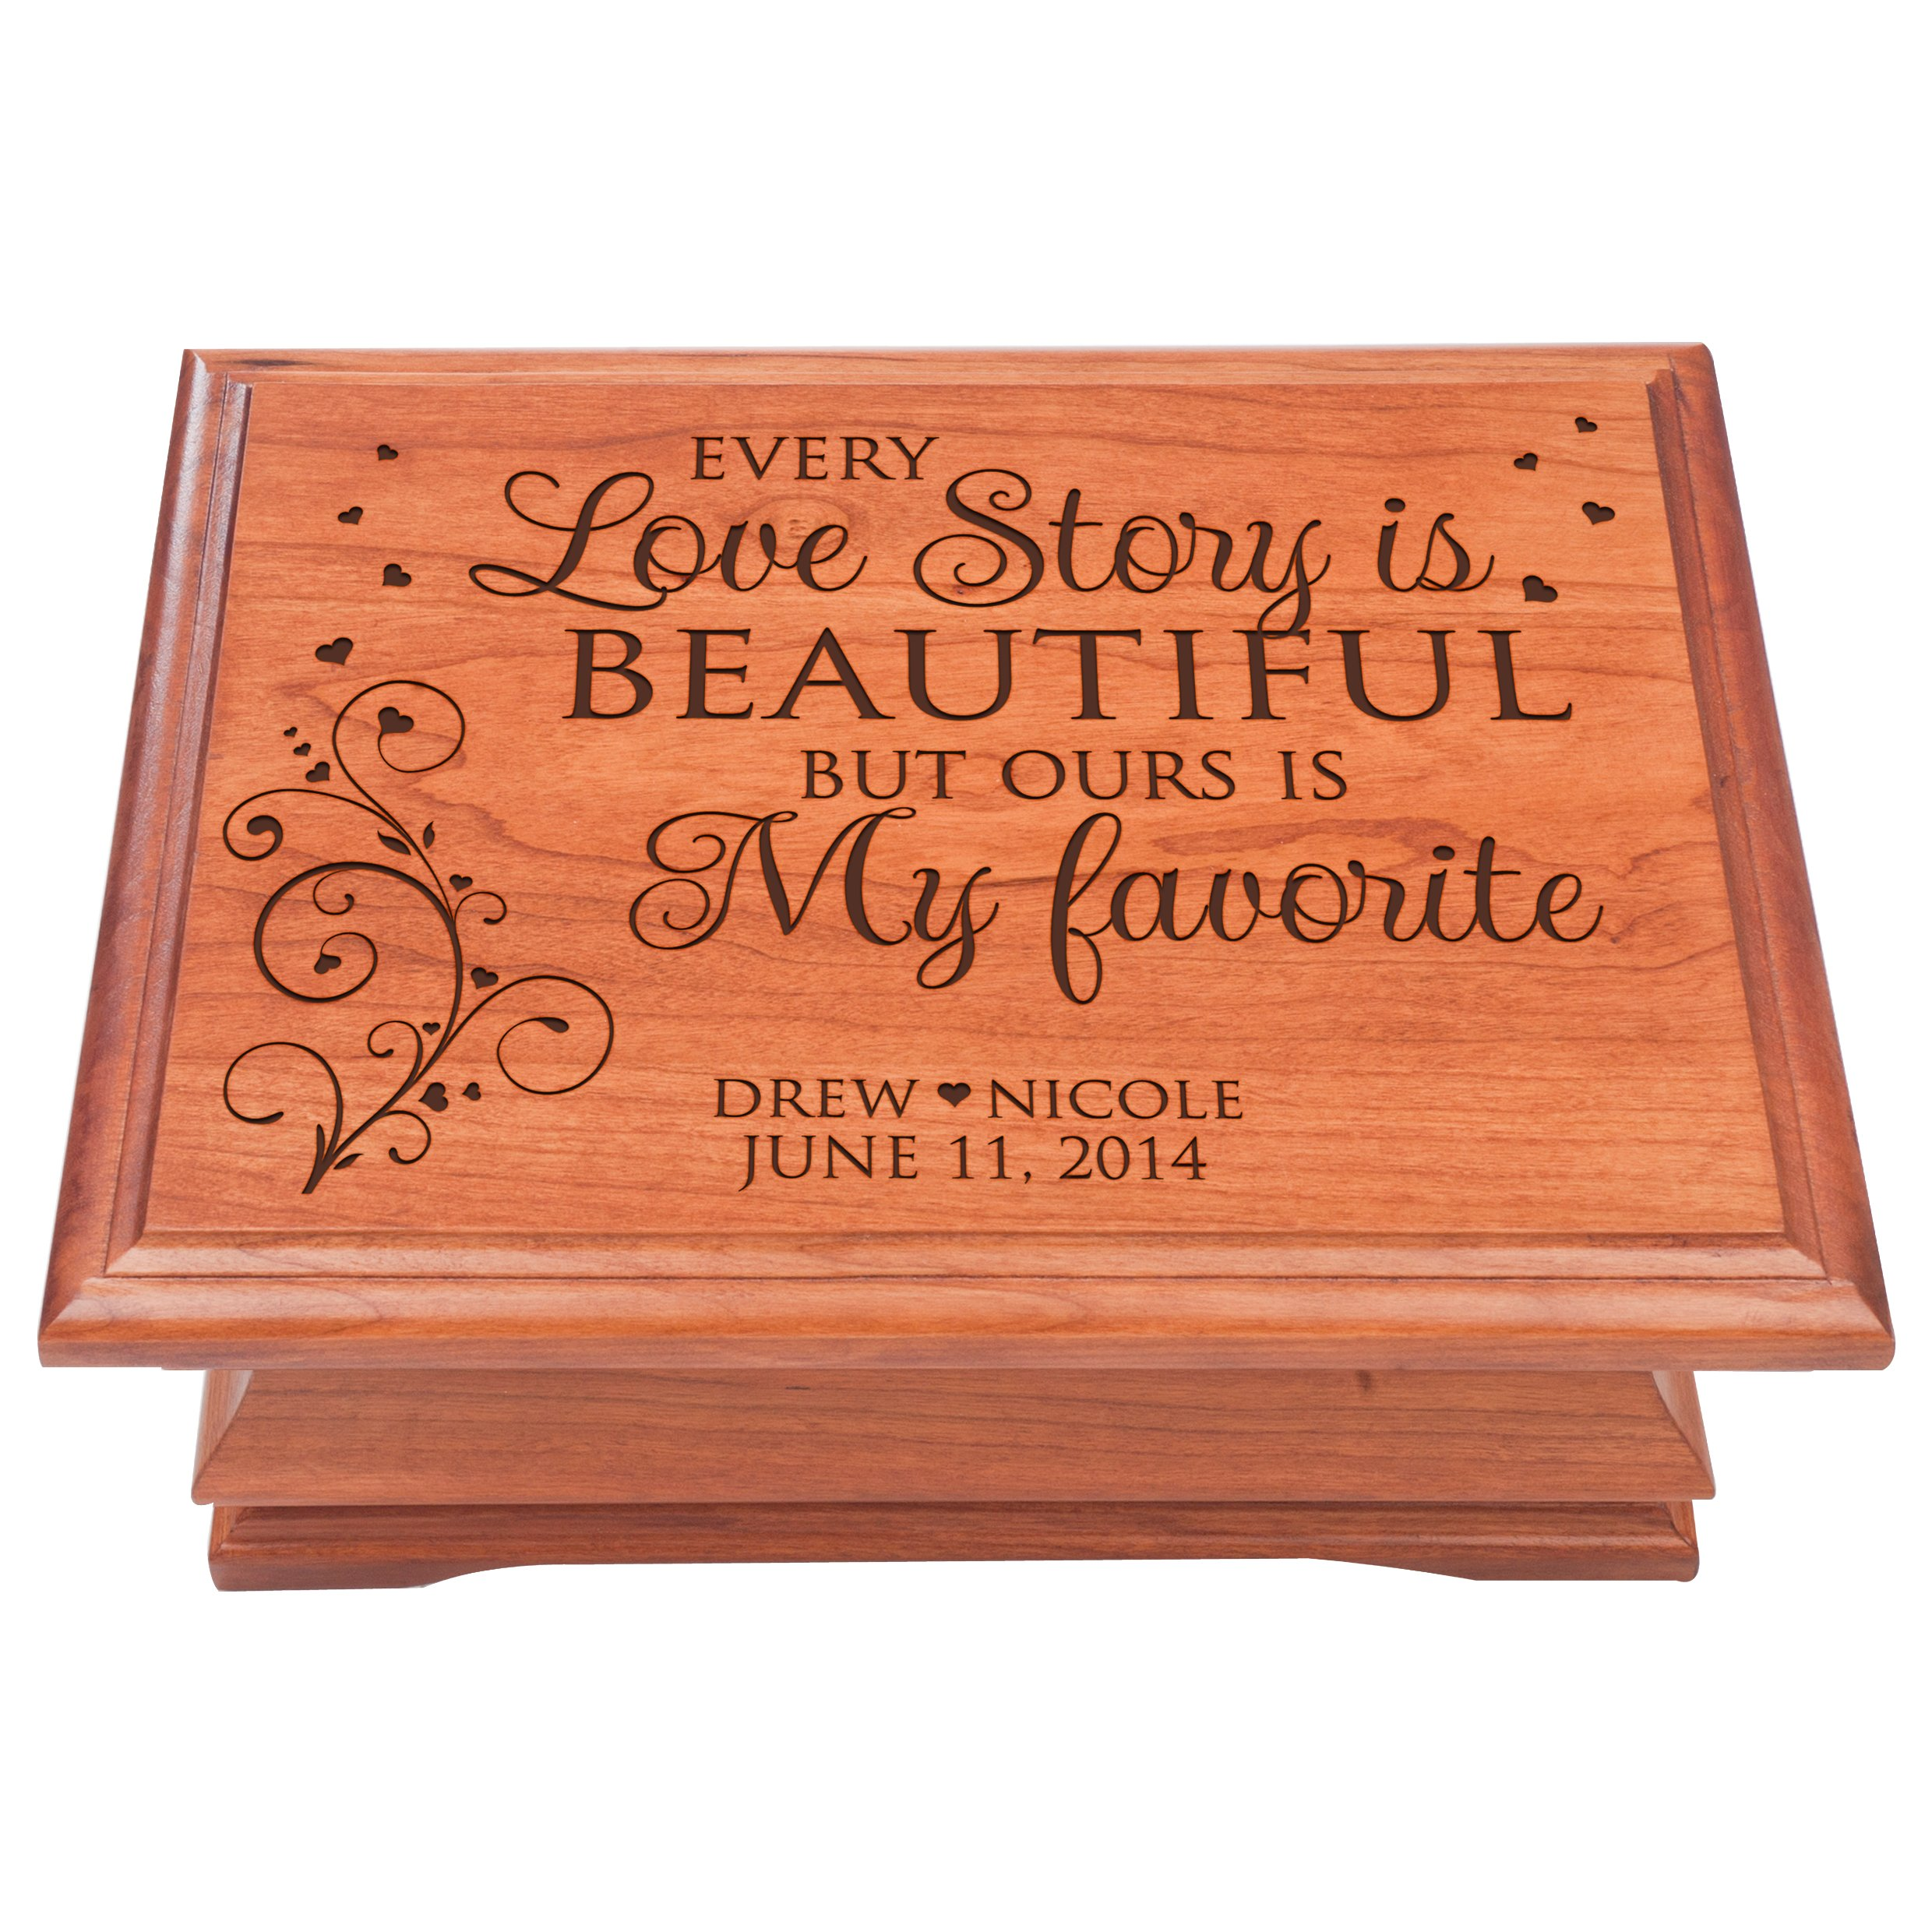 Personalized Jewelry Box for Couple Anniversary Gift for her, Keepsake Box Every Love Story is Beautiful